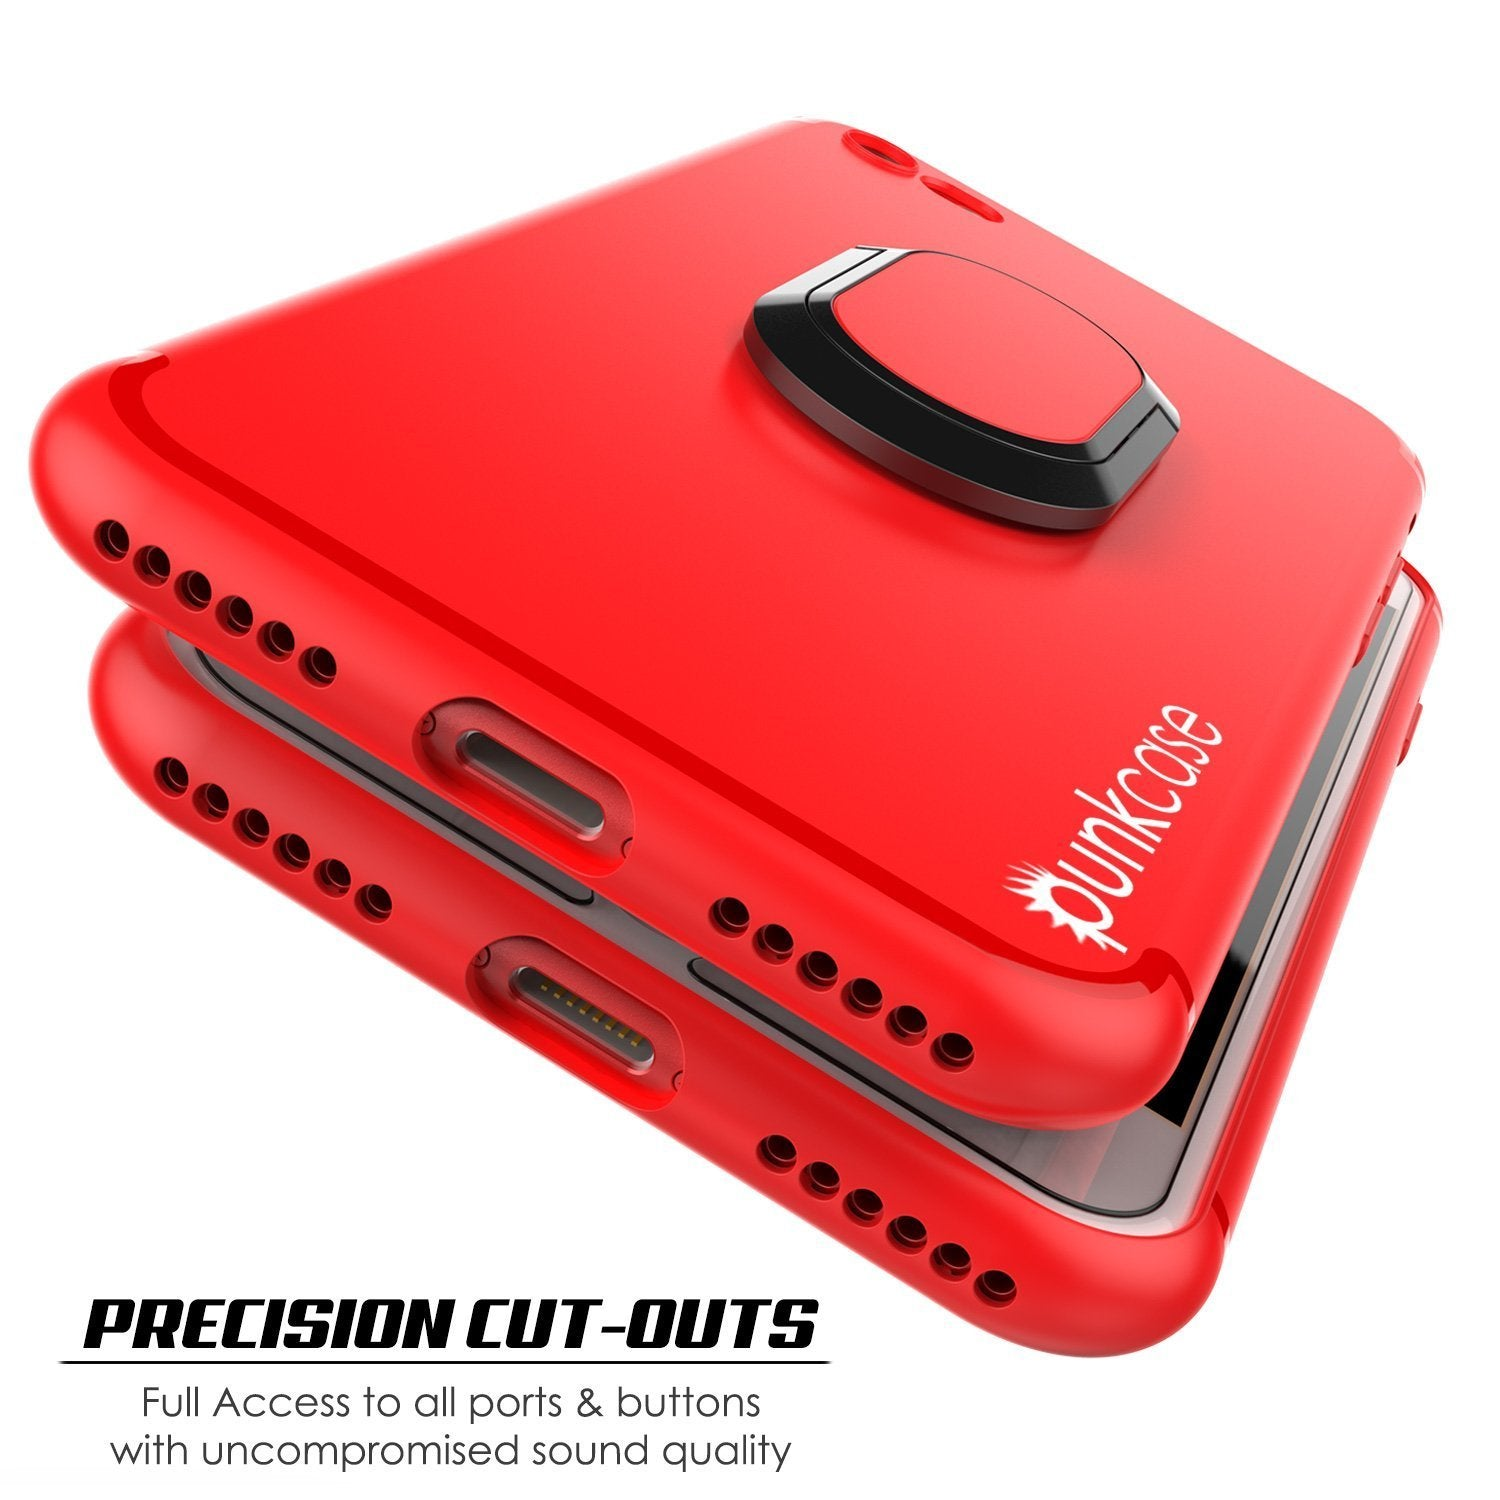 iPhone 8 Case, Punkcase Magnetix Protective TPU Cover W/ Kickstand, Tempered Glass Screen Protector [Red]